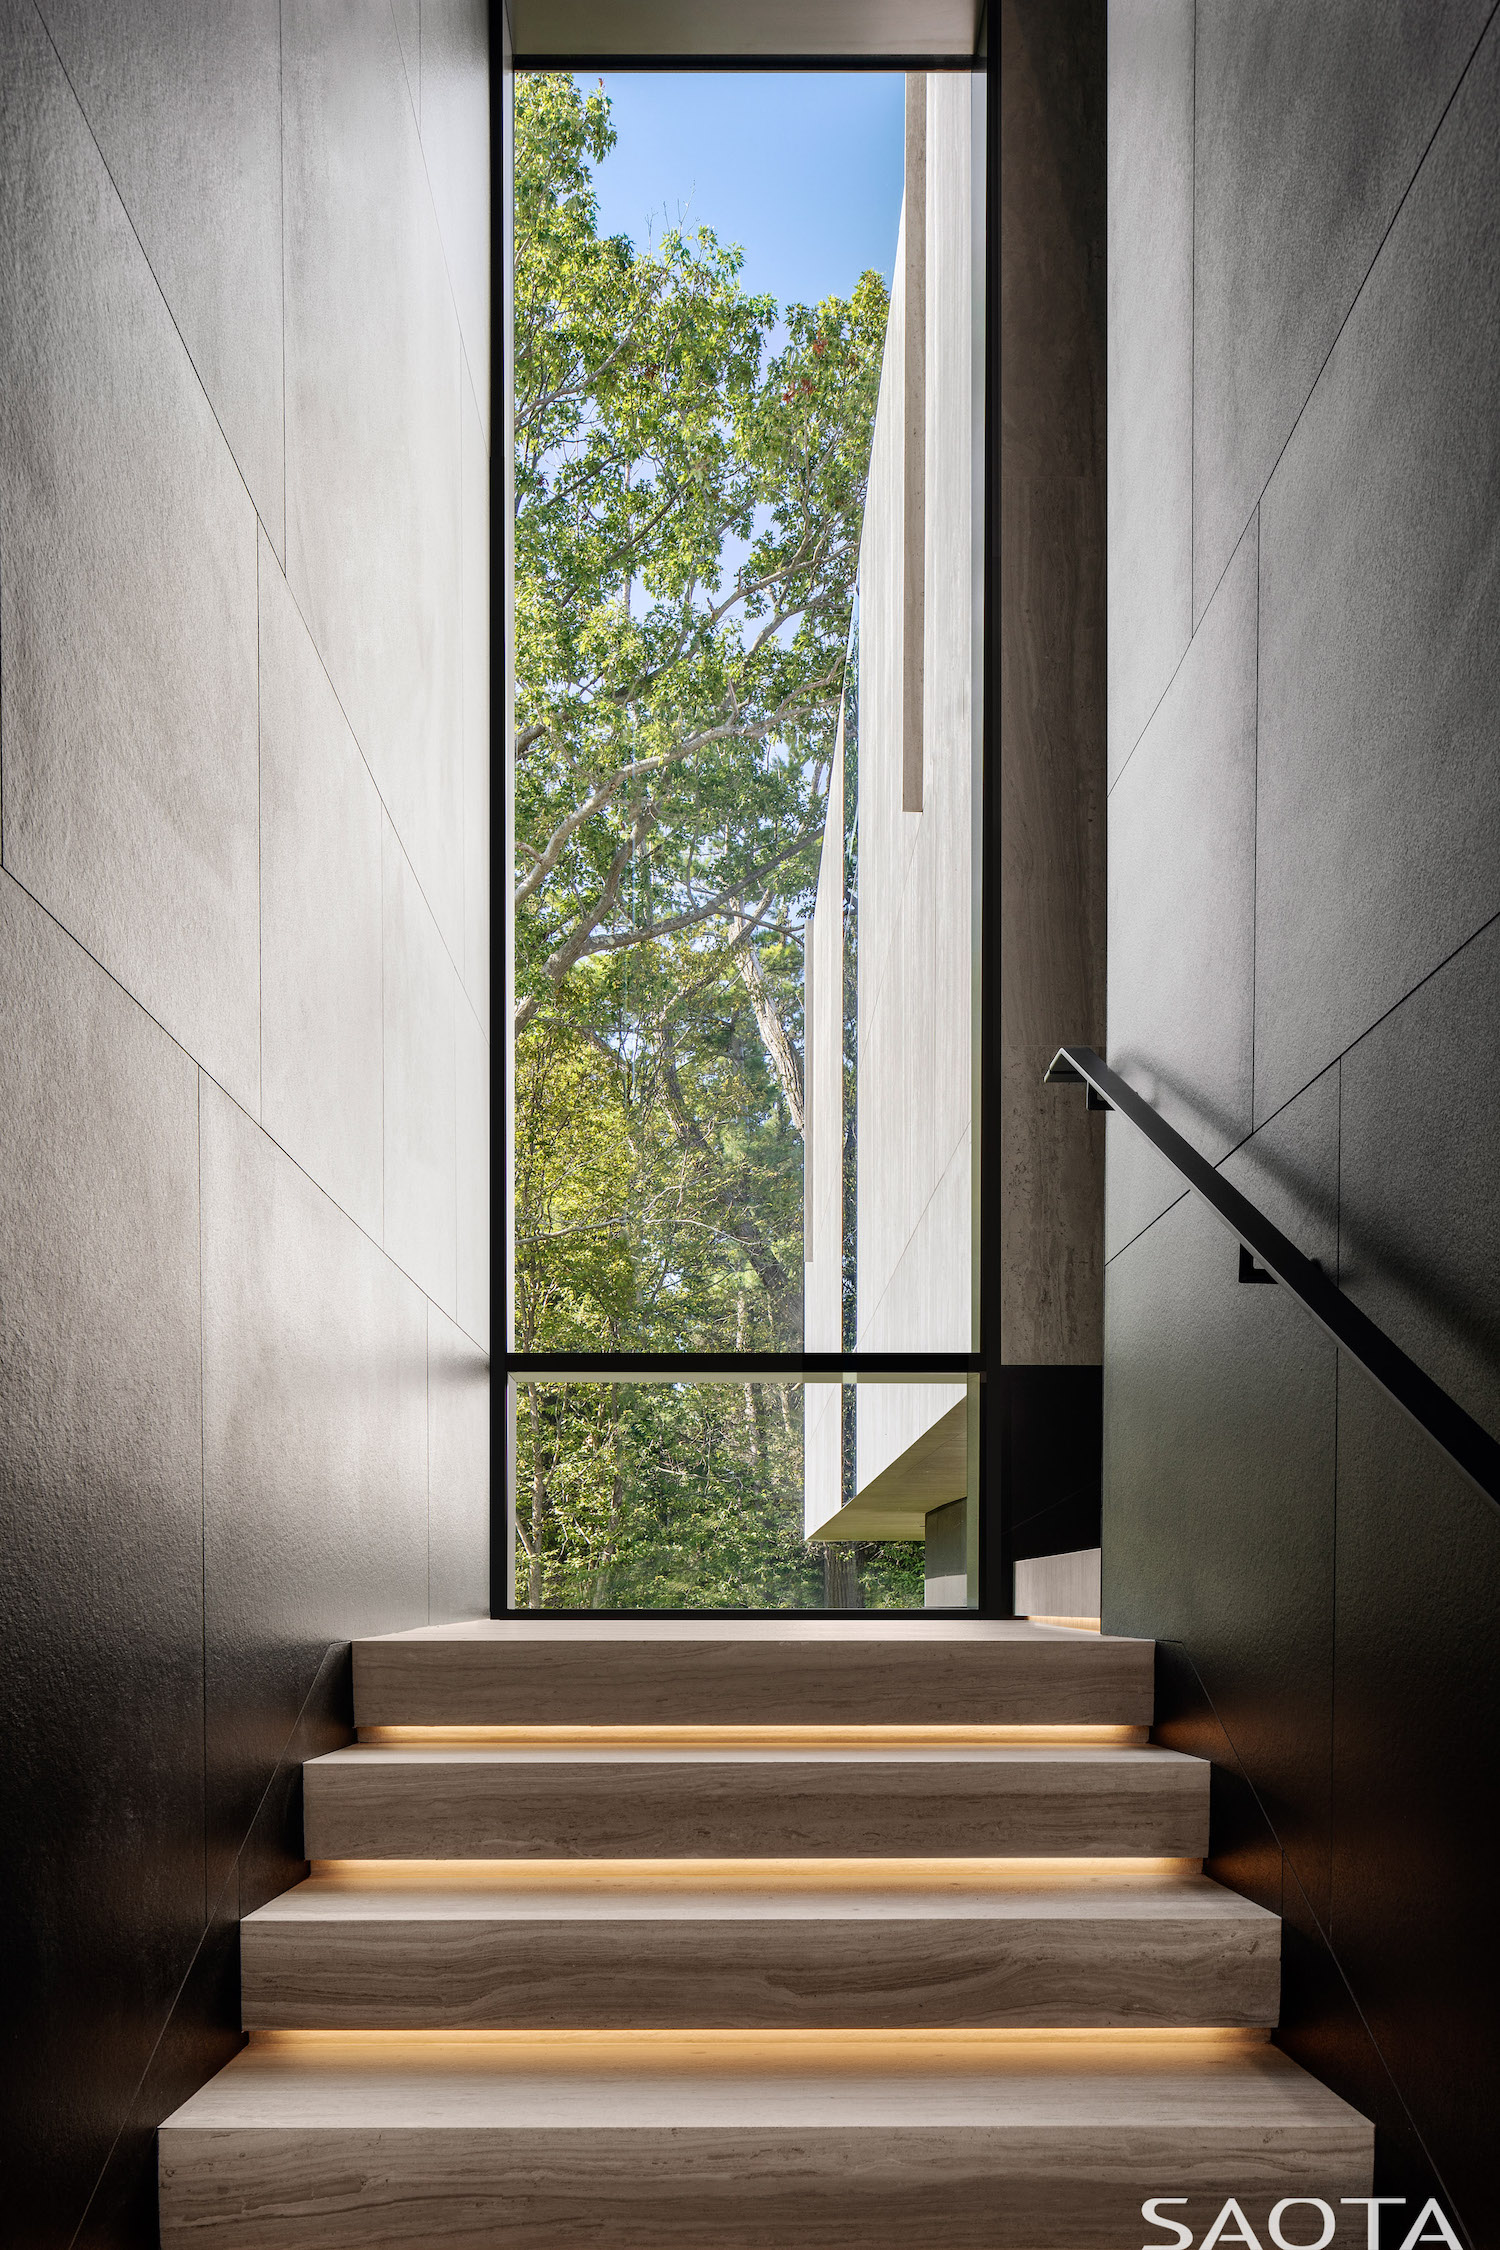 sunlight hitting the staircase through vertical window